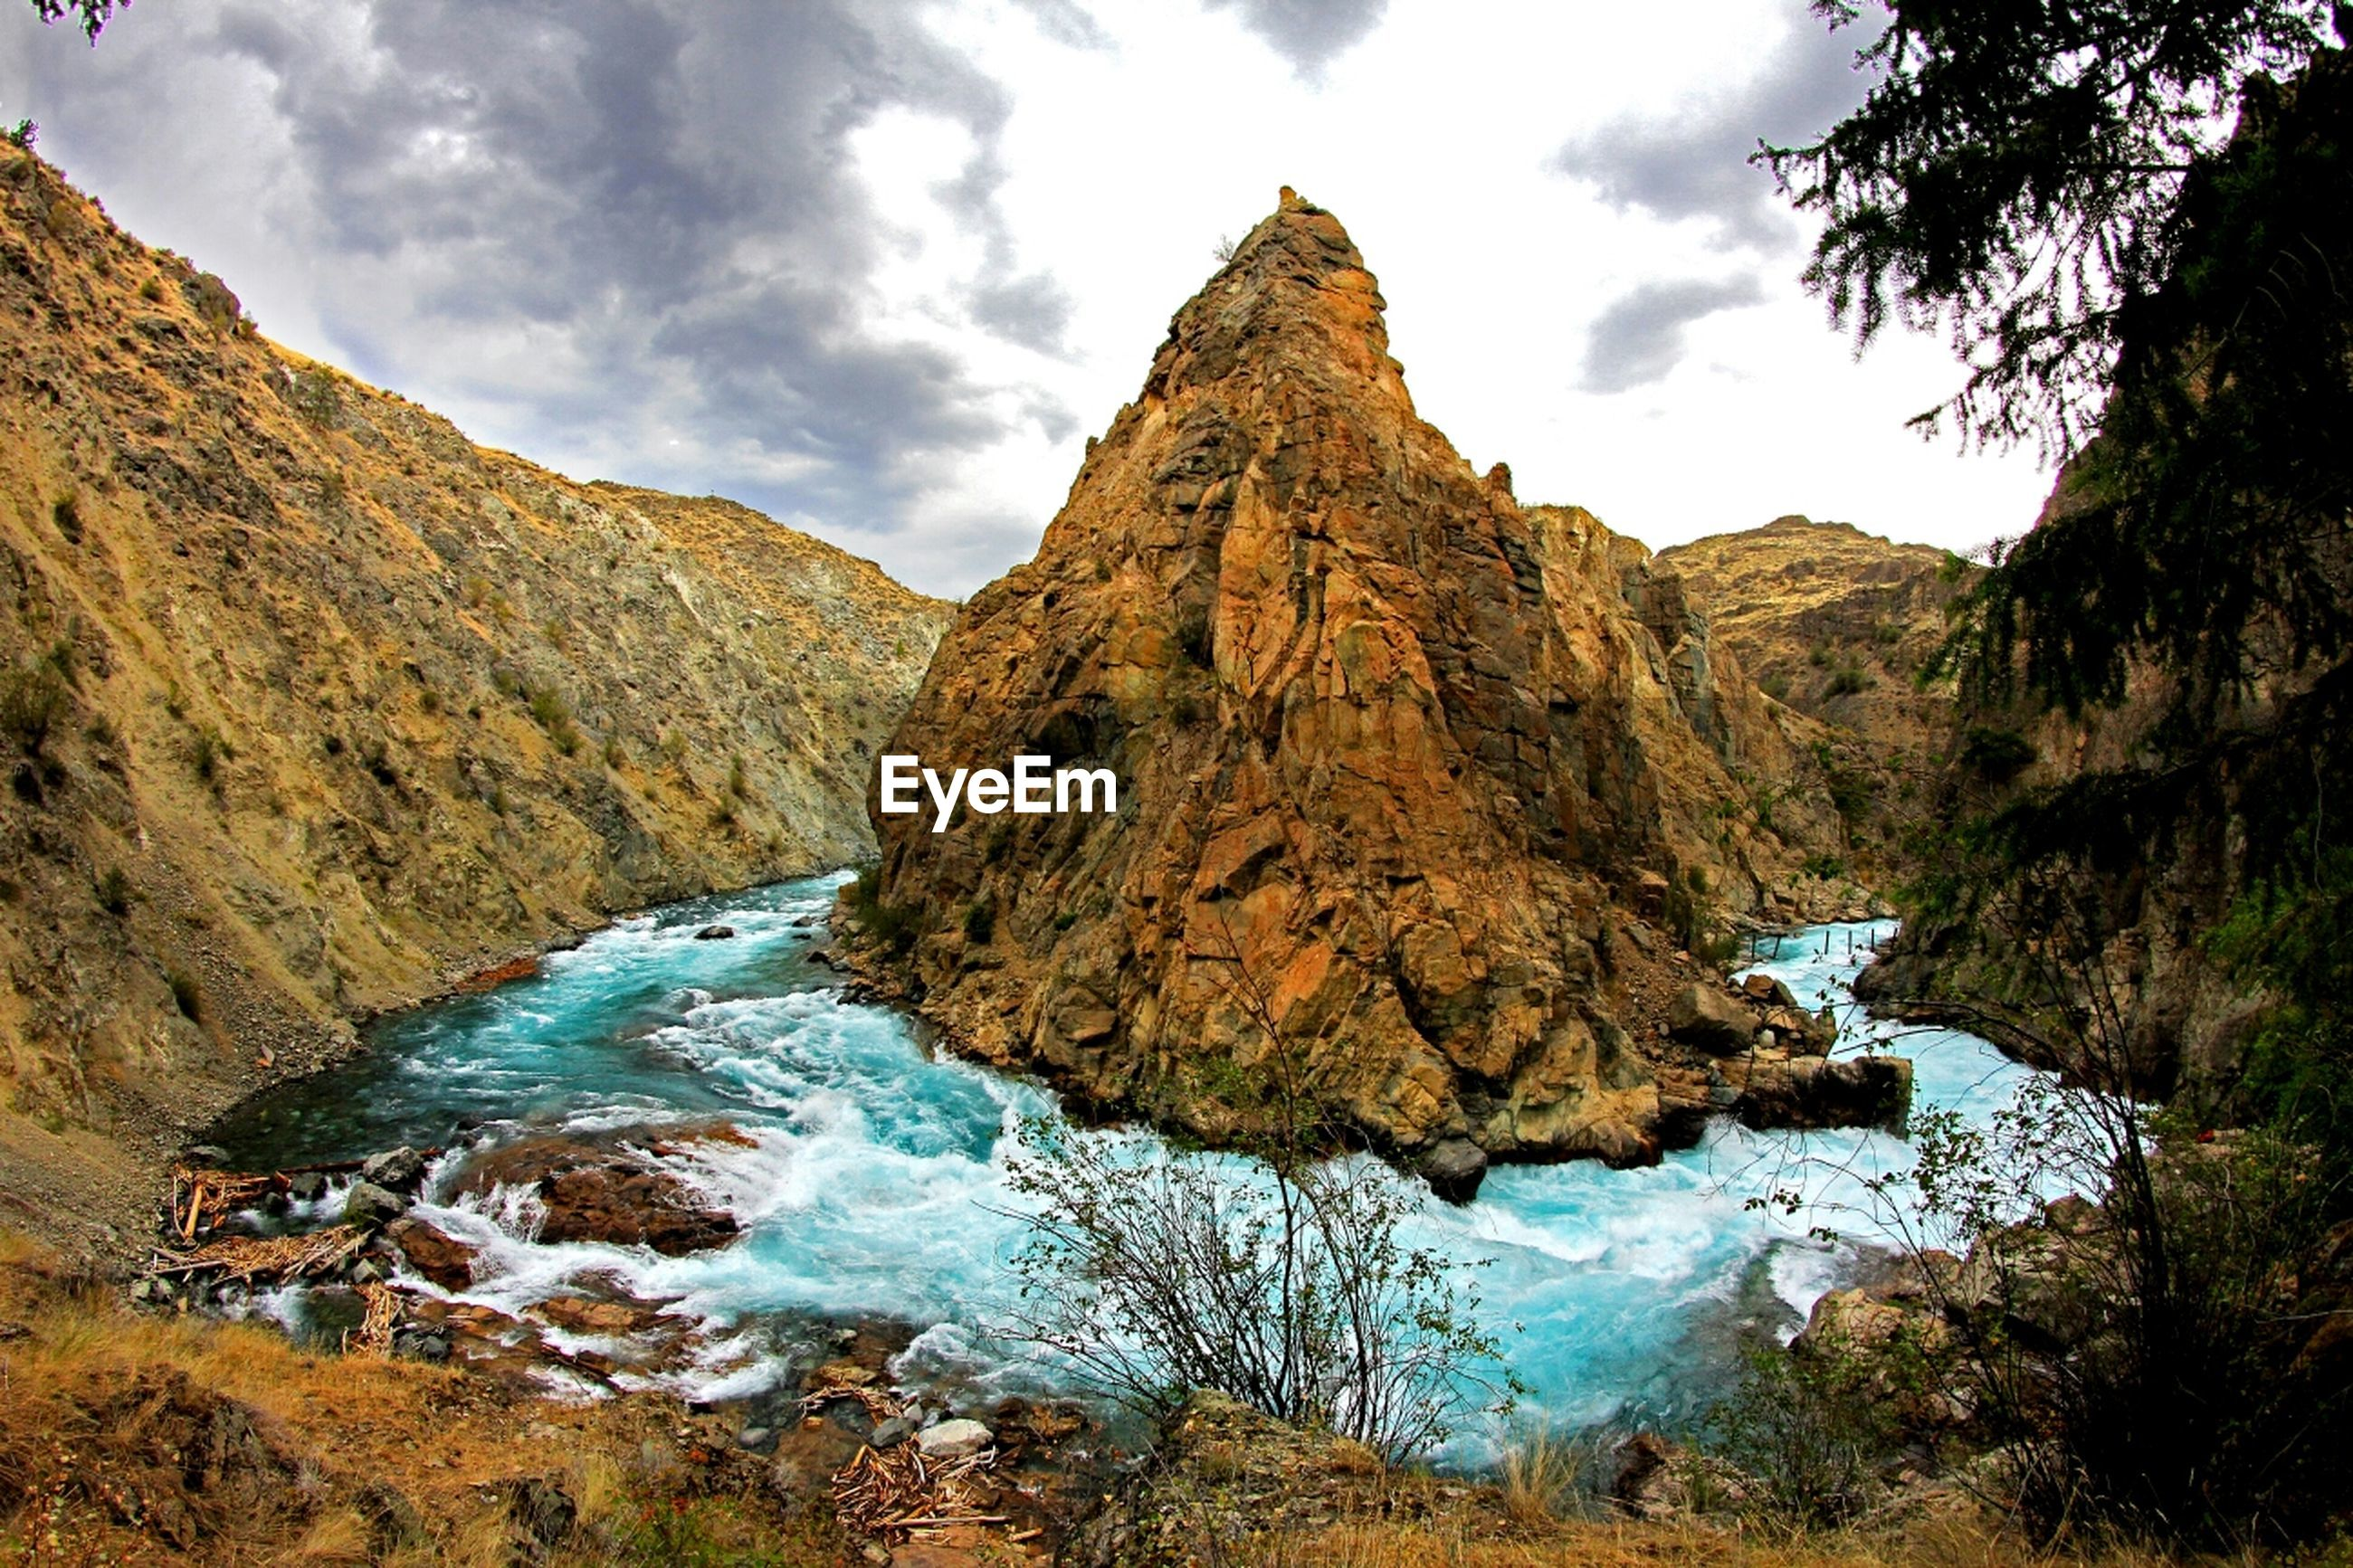 River flowing through rock formations against sky